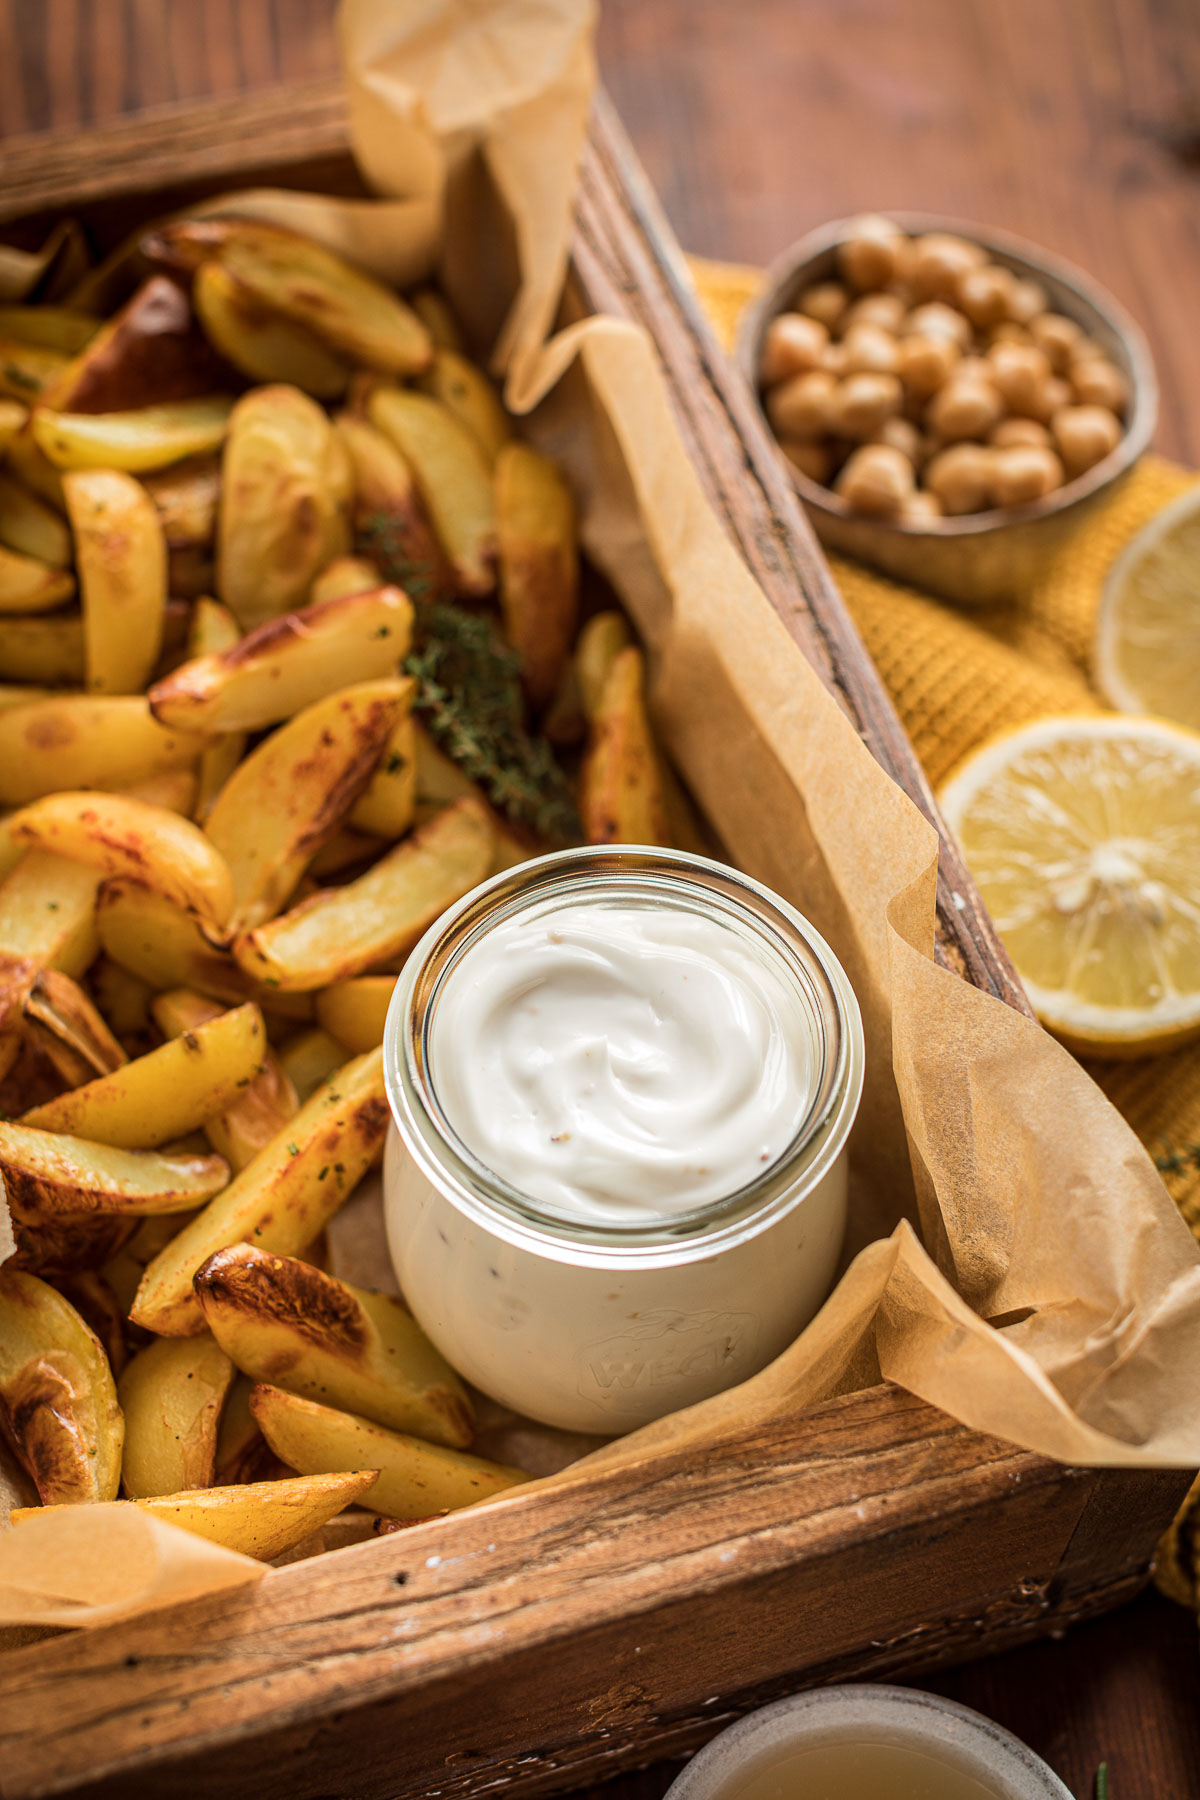 maionese vegana di aquafaba senza uova senza soia con patate al forno easy vegan mayonnaise with aquafaba soy-free mayo ready in 2 minutes with baked potatoes